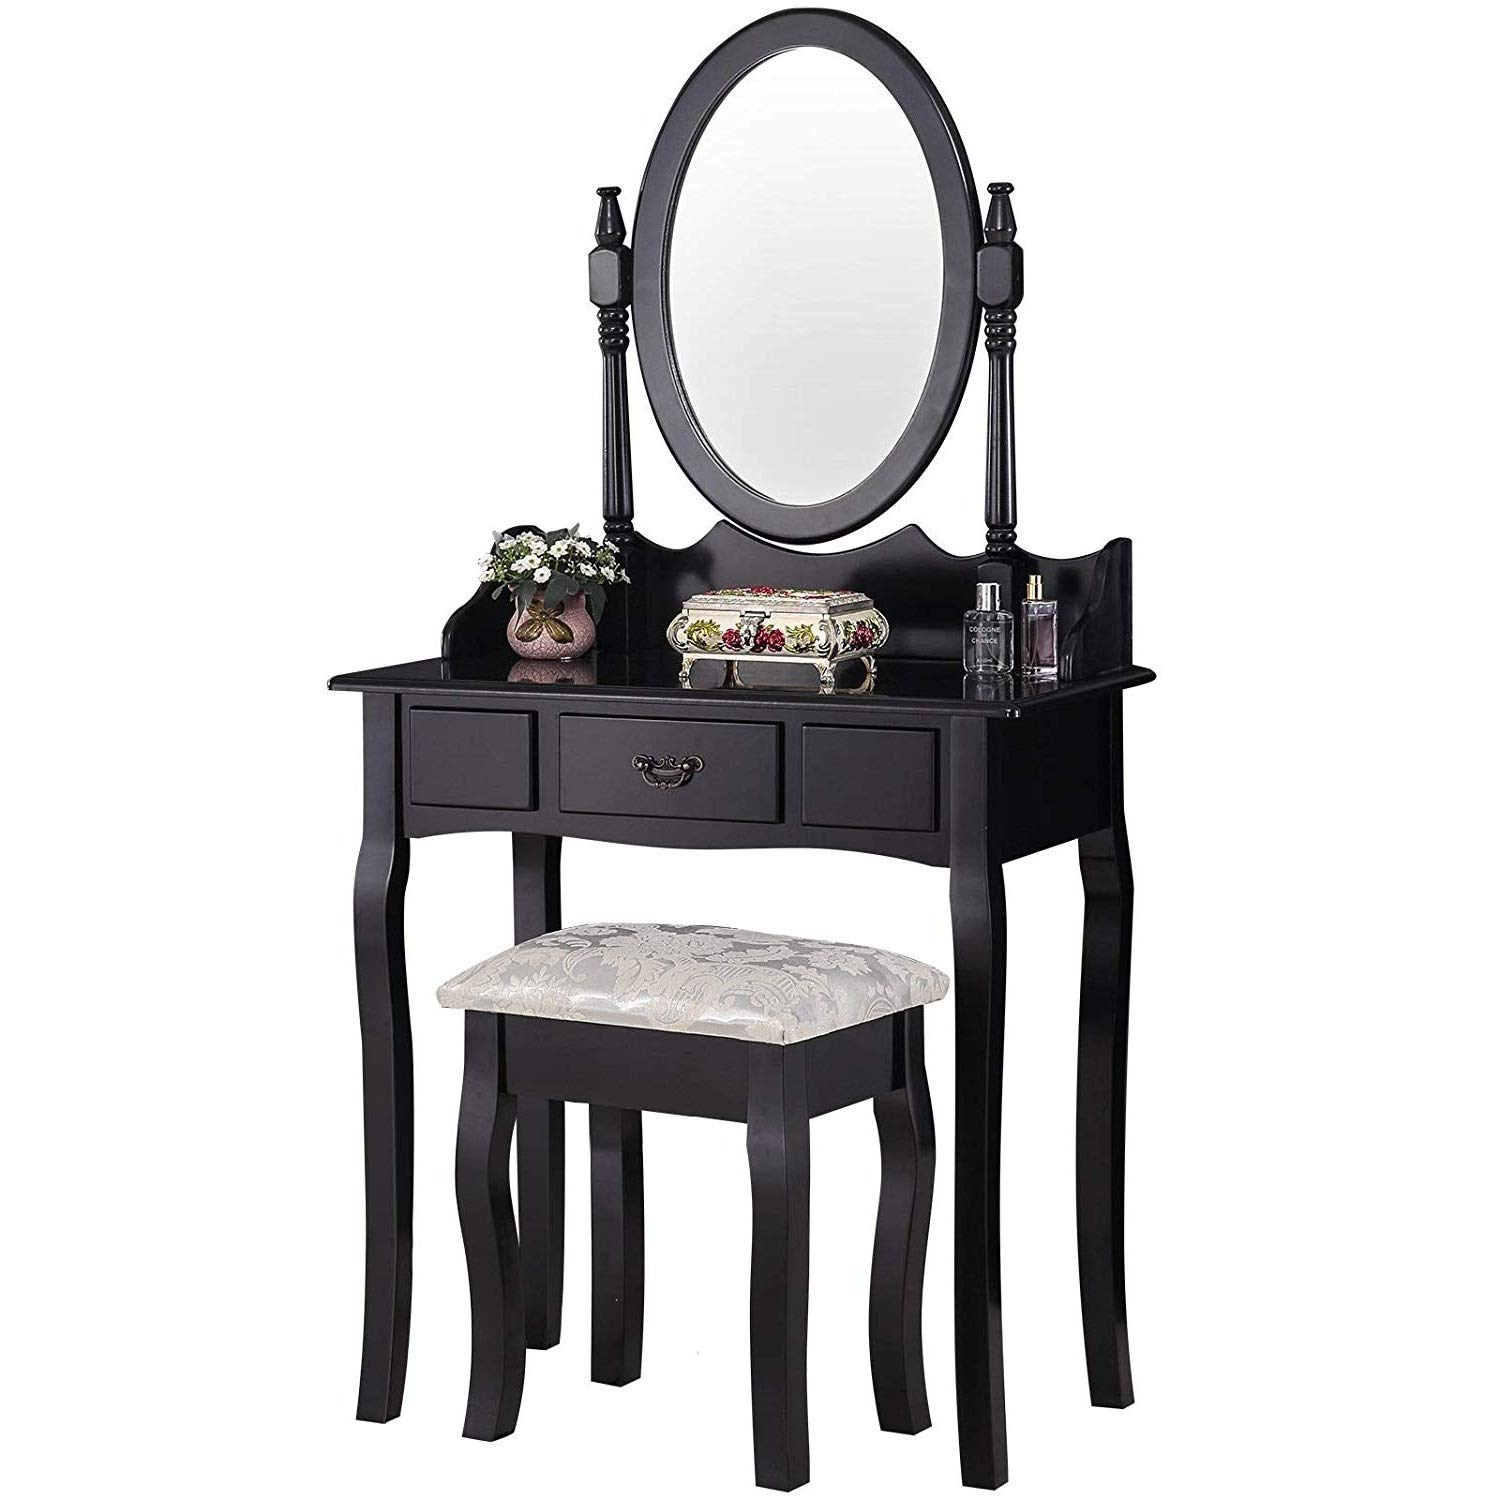 Mecor Vanity Table Set/Oval Mirror,Wood Makeup Table w/Drawer Storage,Bedroom Dressing Table with Cushioned Stool for Kids Girls Women Black